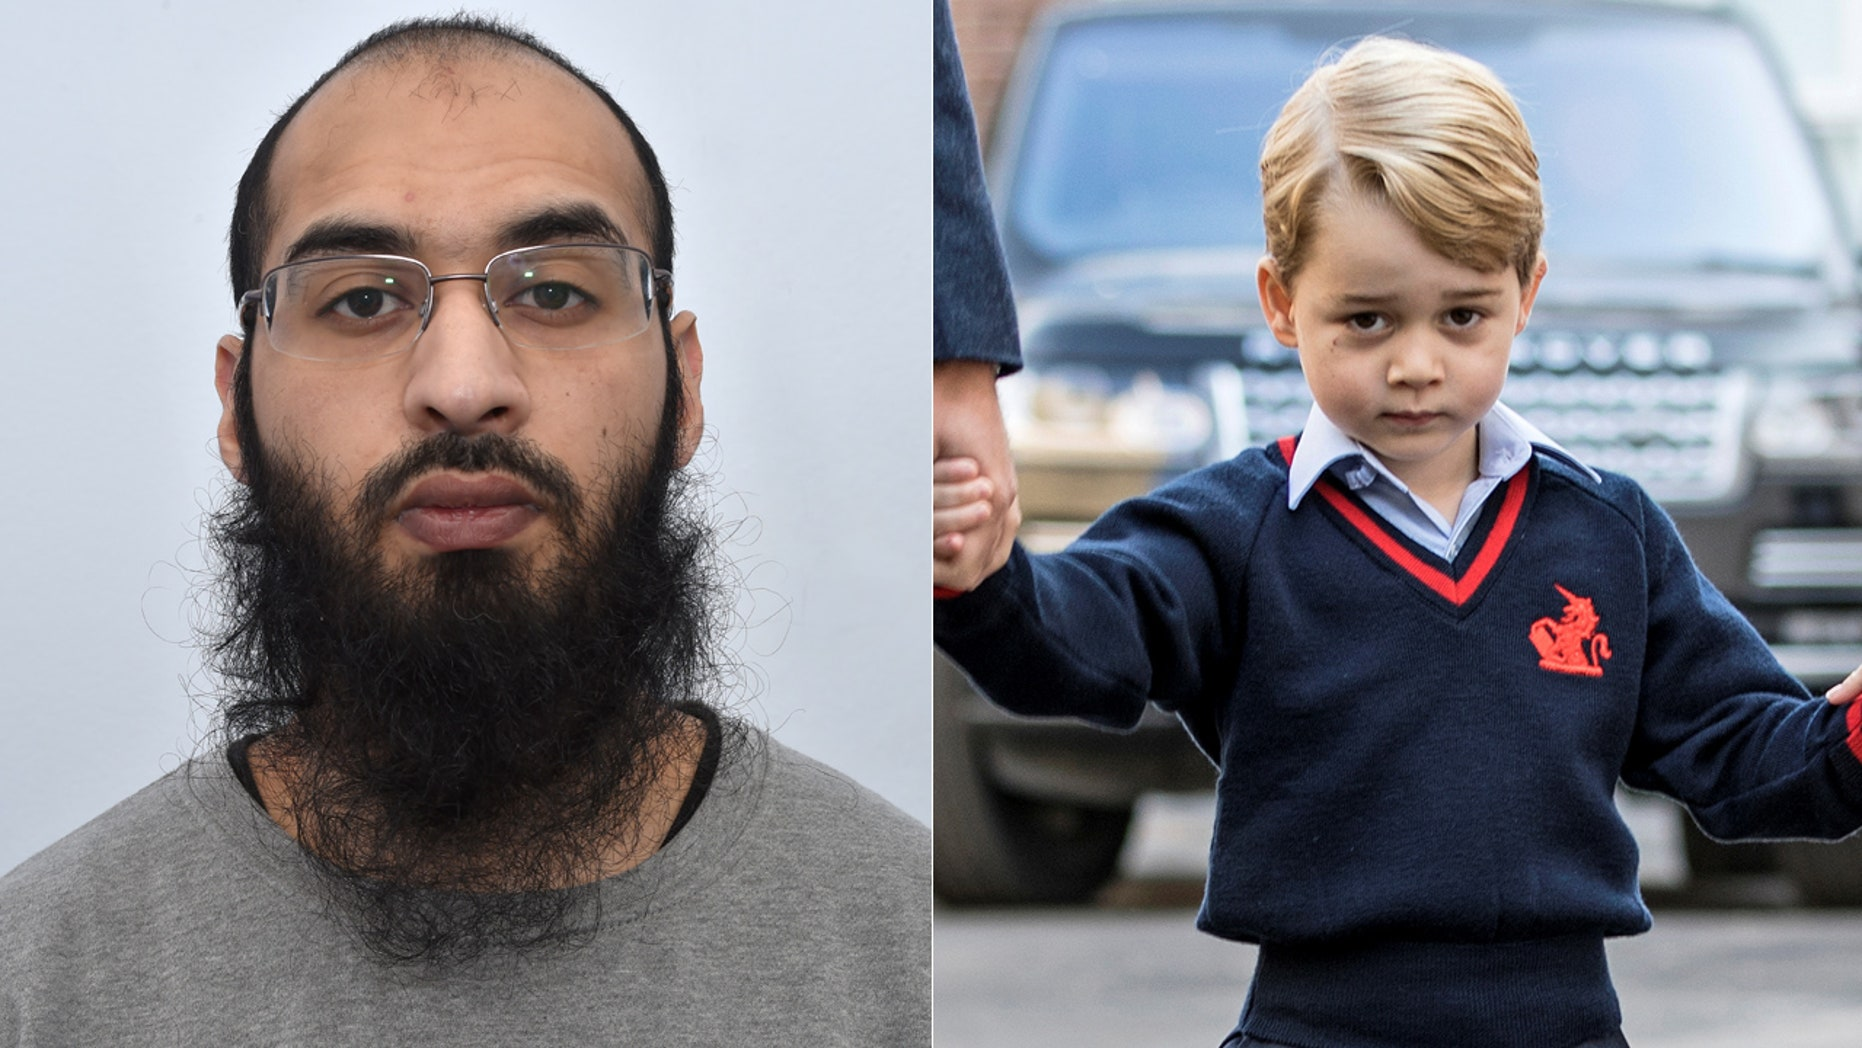 Husnain Rashid, who has pleaded guilty to terrorism offences relating to Britain's Prince George.